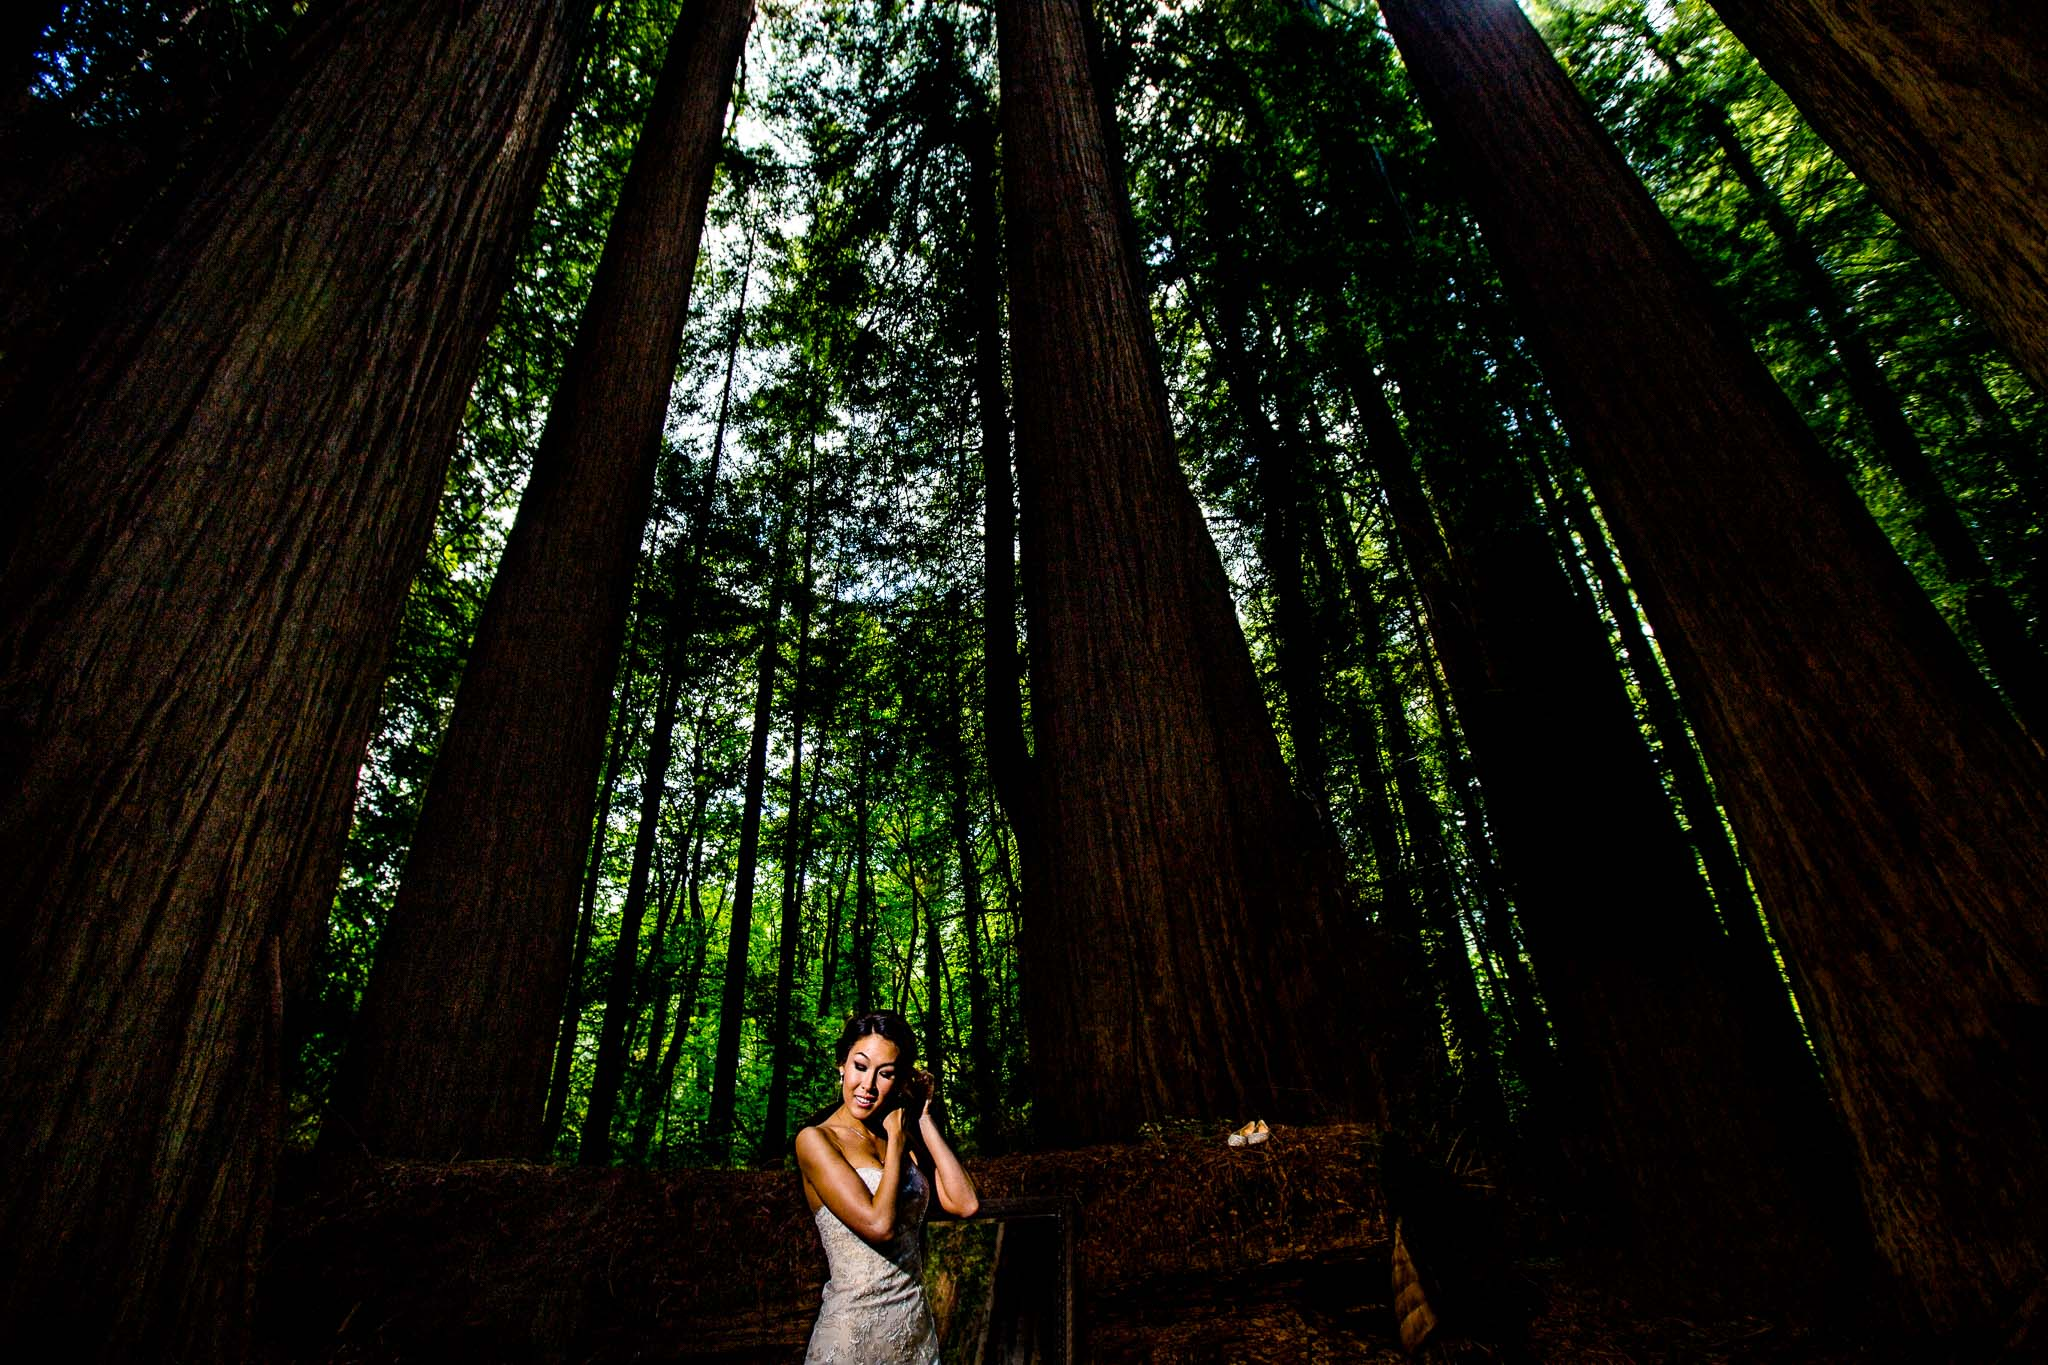 Bride getting ready in massive redwoods forest